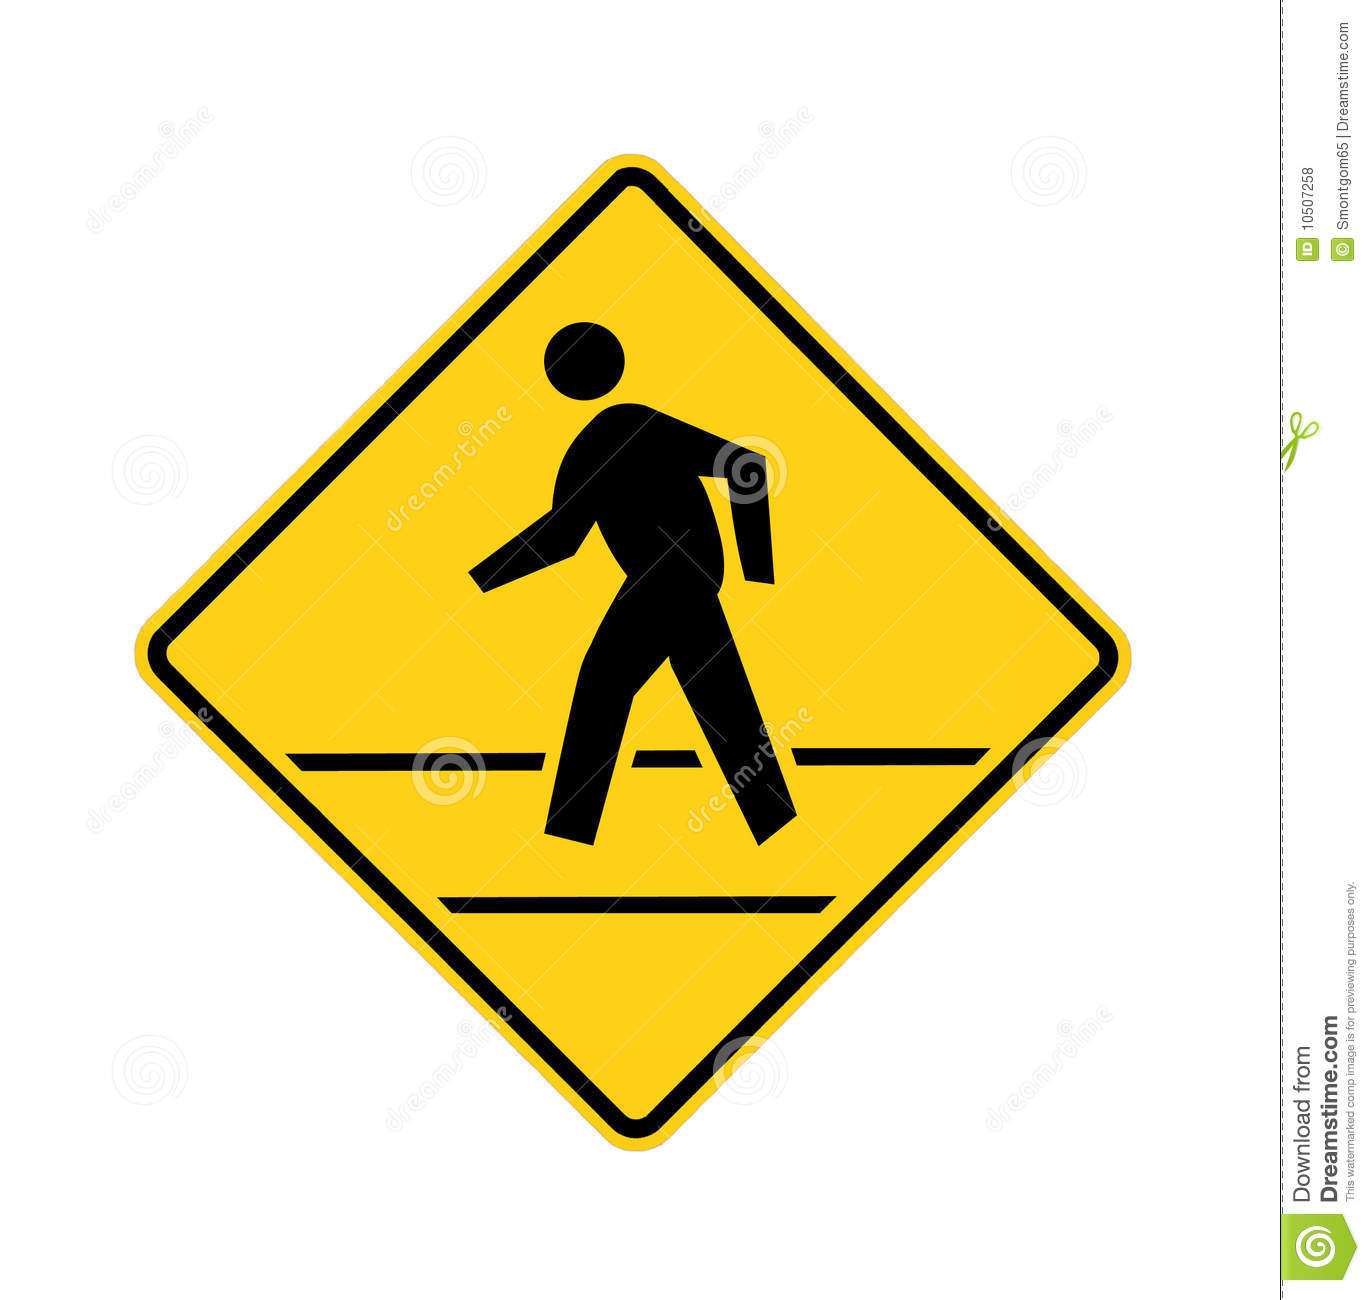 Road Sign Crosswalk Yellow With Lines Stock Photo  Image. Education Manual Signs Of Stroke. Important Symbol Signs. Common Cause Signs. Smile Signs Of Stroke. Latin Kings Signs. Academic Library Signs. Changes Signs Of Stroke. Blood Glucose Signs